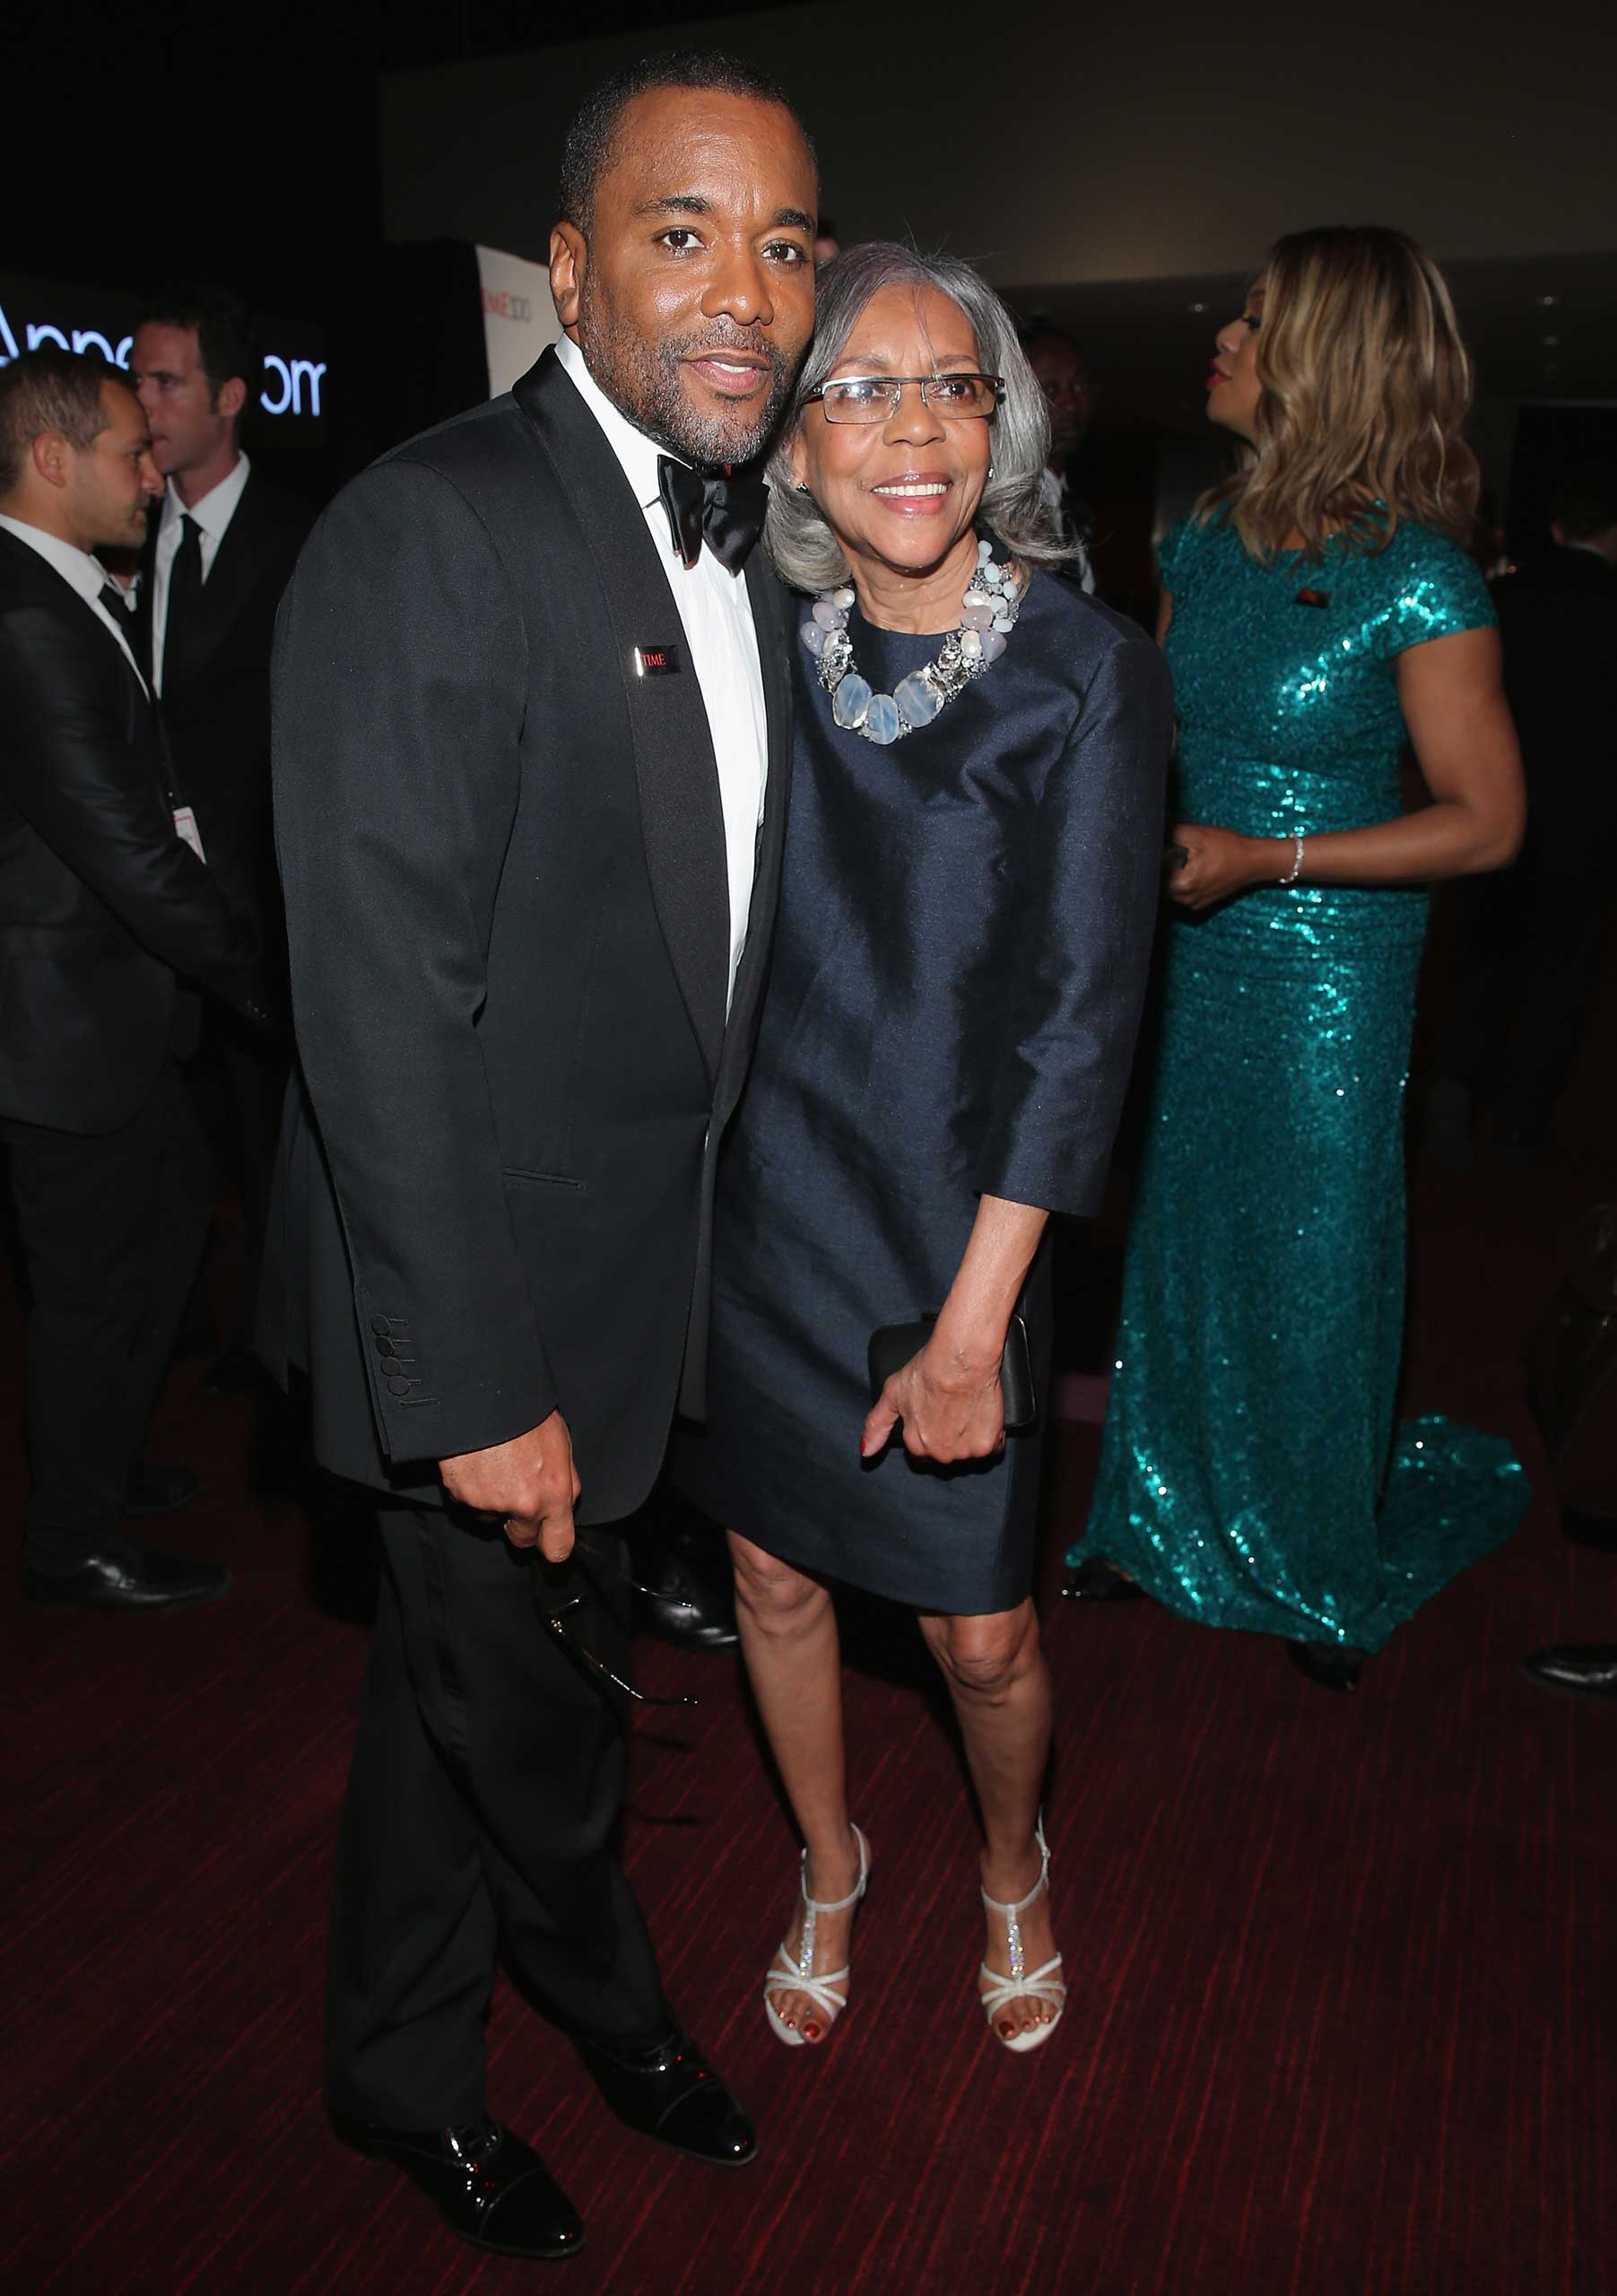 Lee Daniels and Clara Watson attend the TIME 100 Gala at Jazz at Lincoln Center in New York City on Apr. 21, 2015.